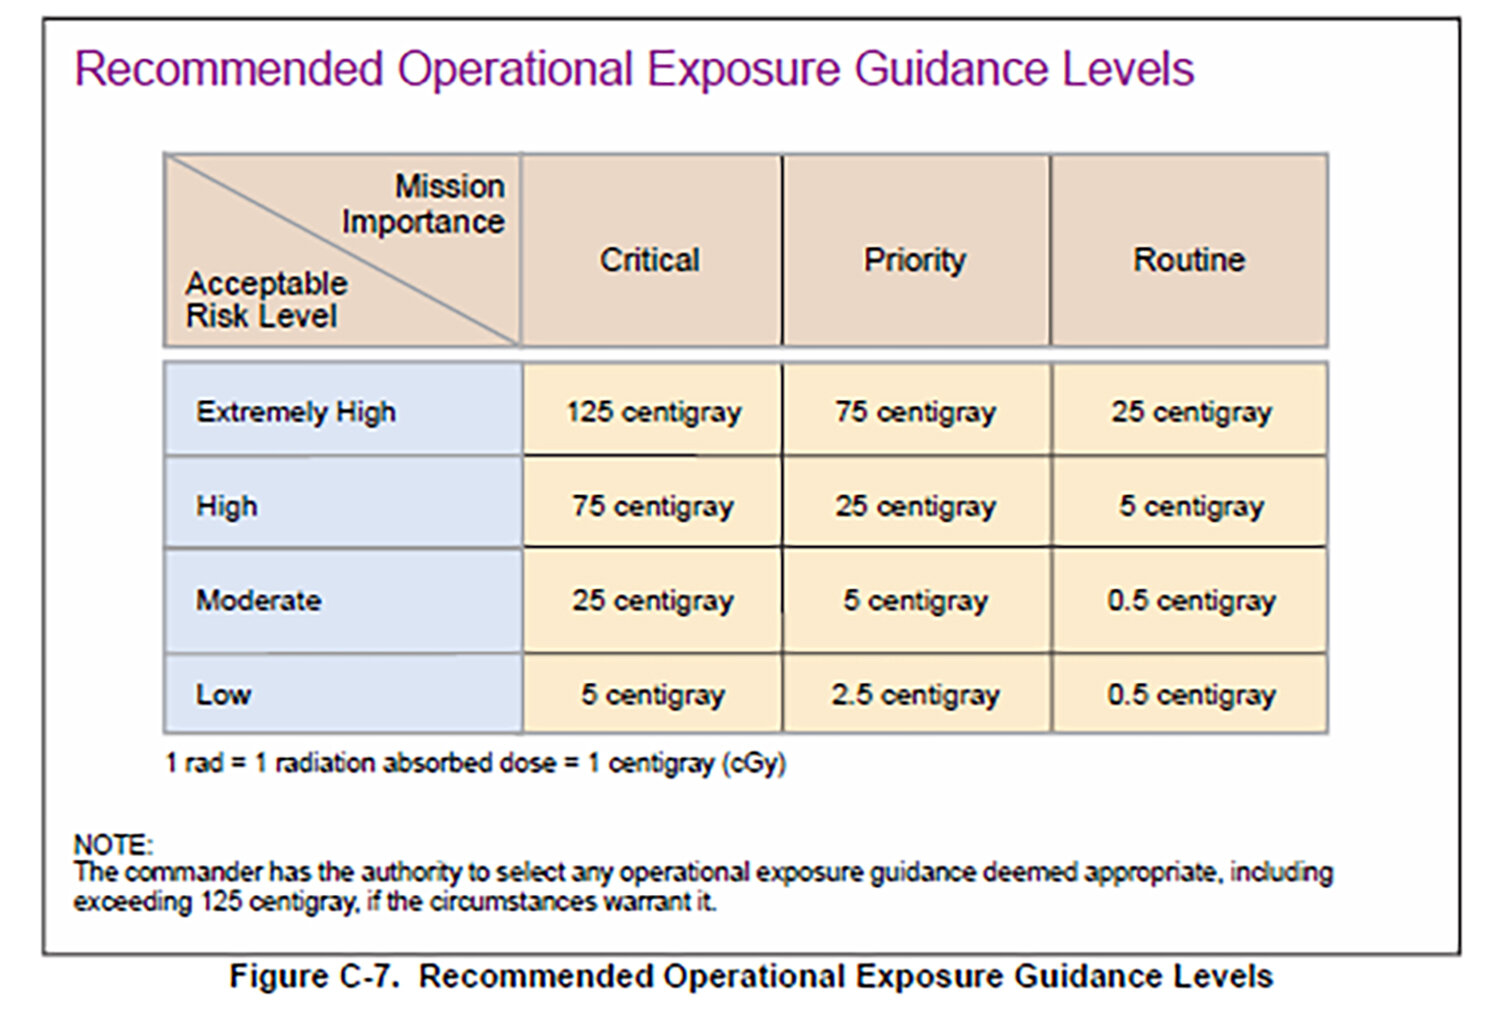 Source:  Joint Publication 3-11 Operations in Chemical, Biological, Radiological and Nuclear Environments